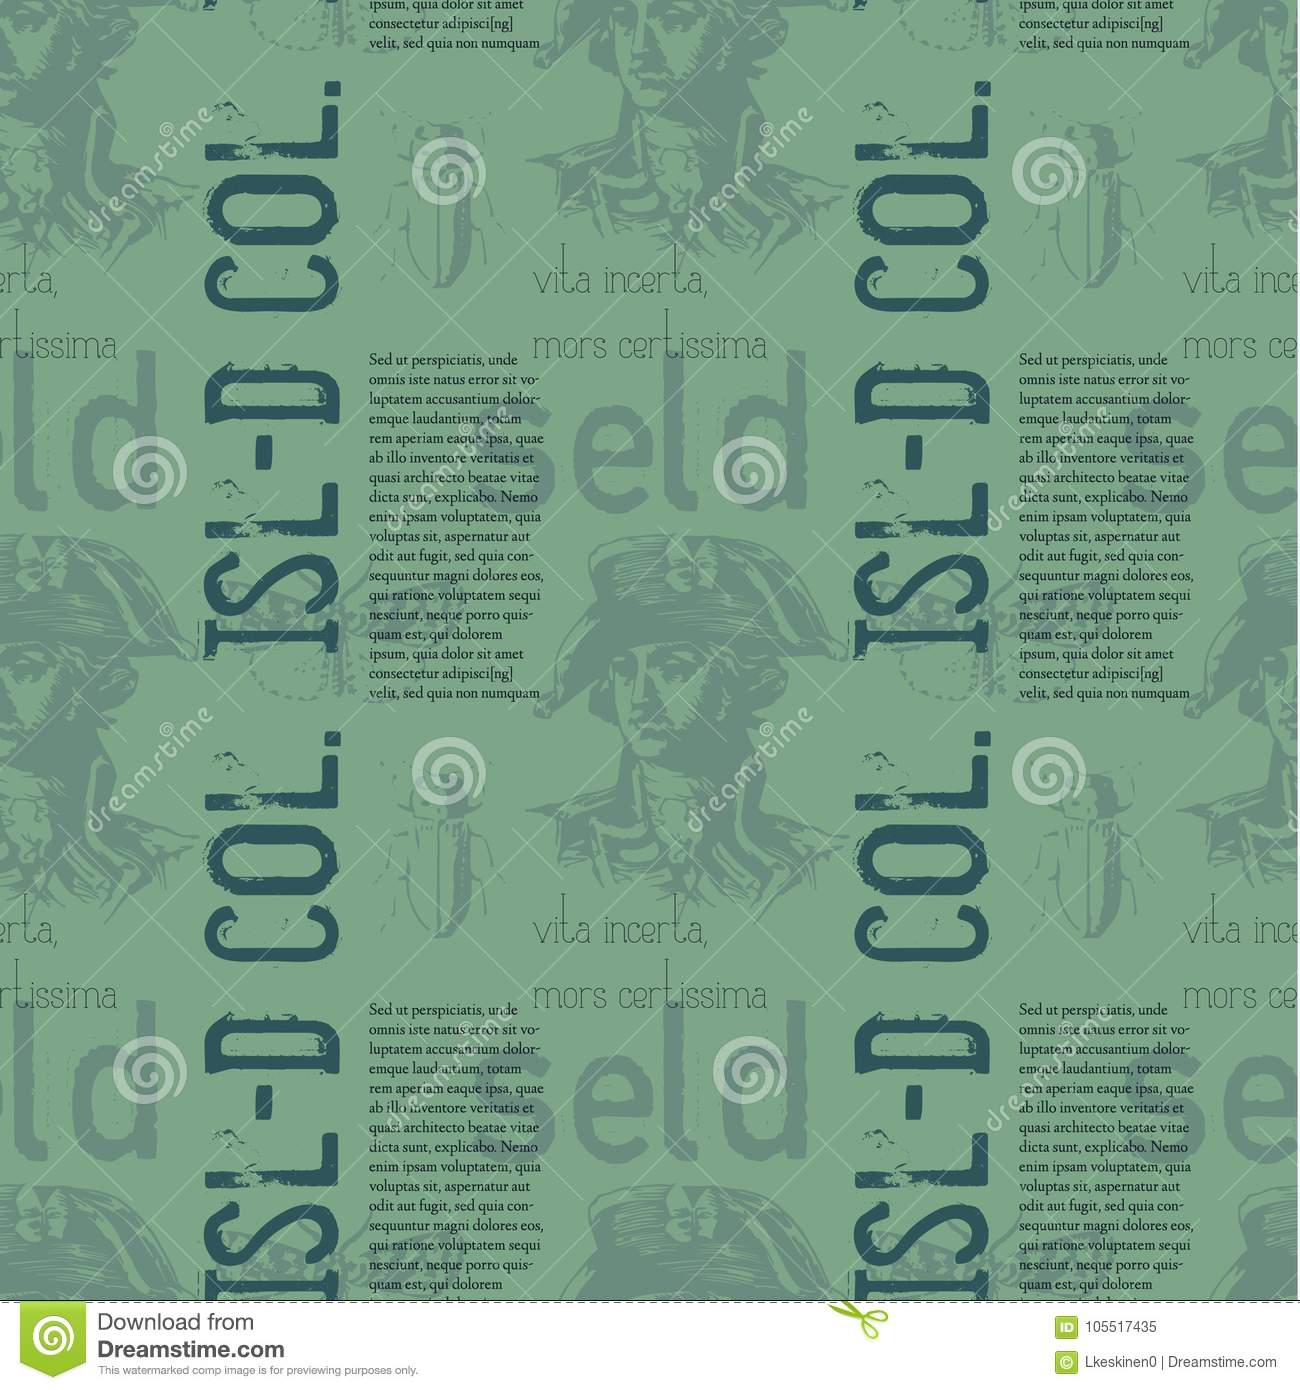 Vita Incerta, Mors Certissima Vintage Design Pattern Stock Vector